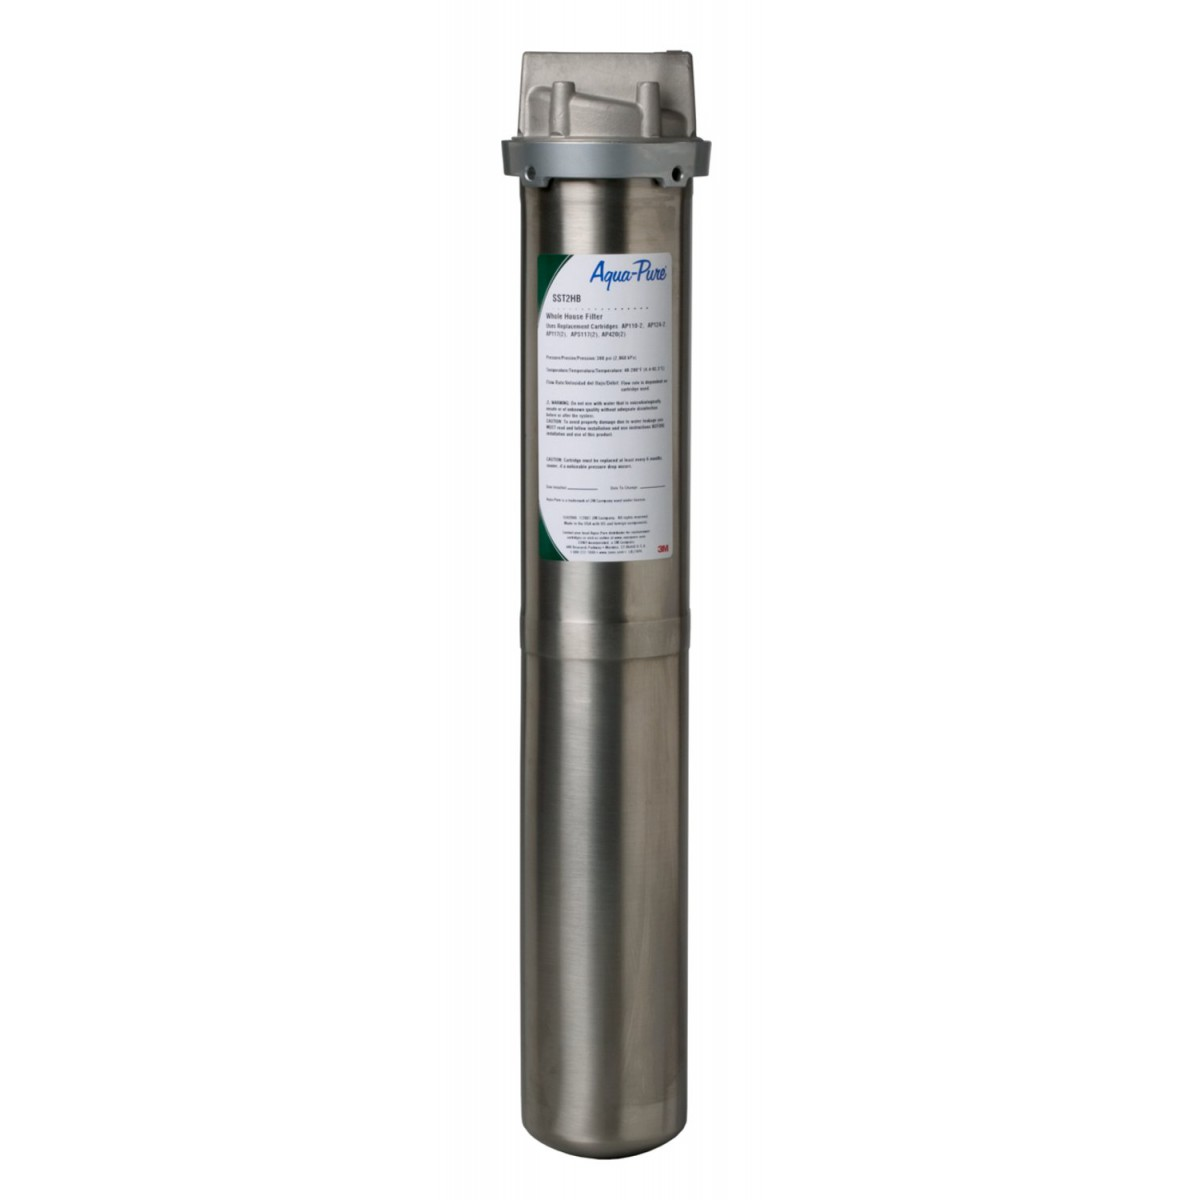 Sst2hb 3m Aqua Pure Whole House Filter System